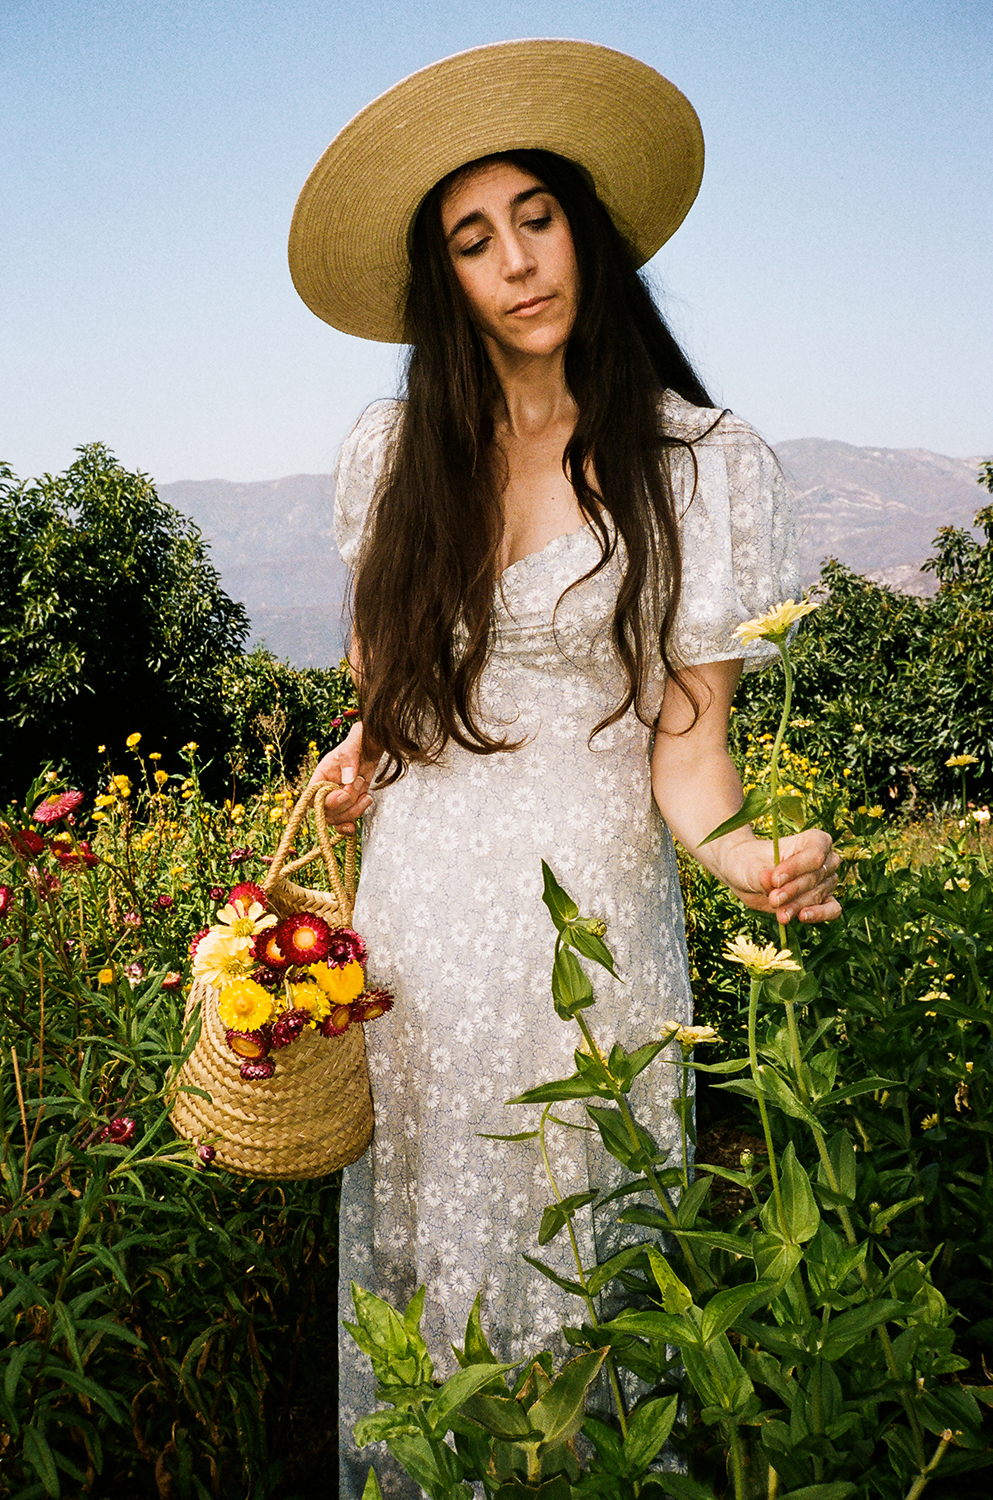 Loria Stern, a tall woman with brown hair wearing a white dress and a straw hat, stands in a field of flowers with a basket of flowers in her hand.